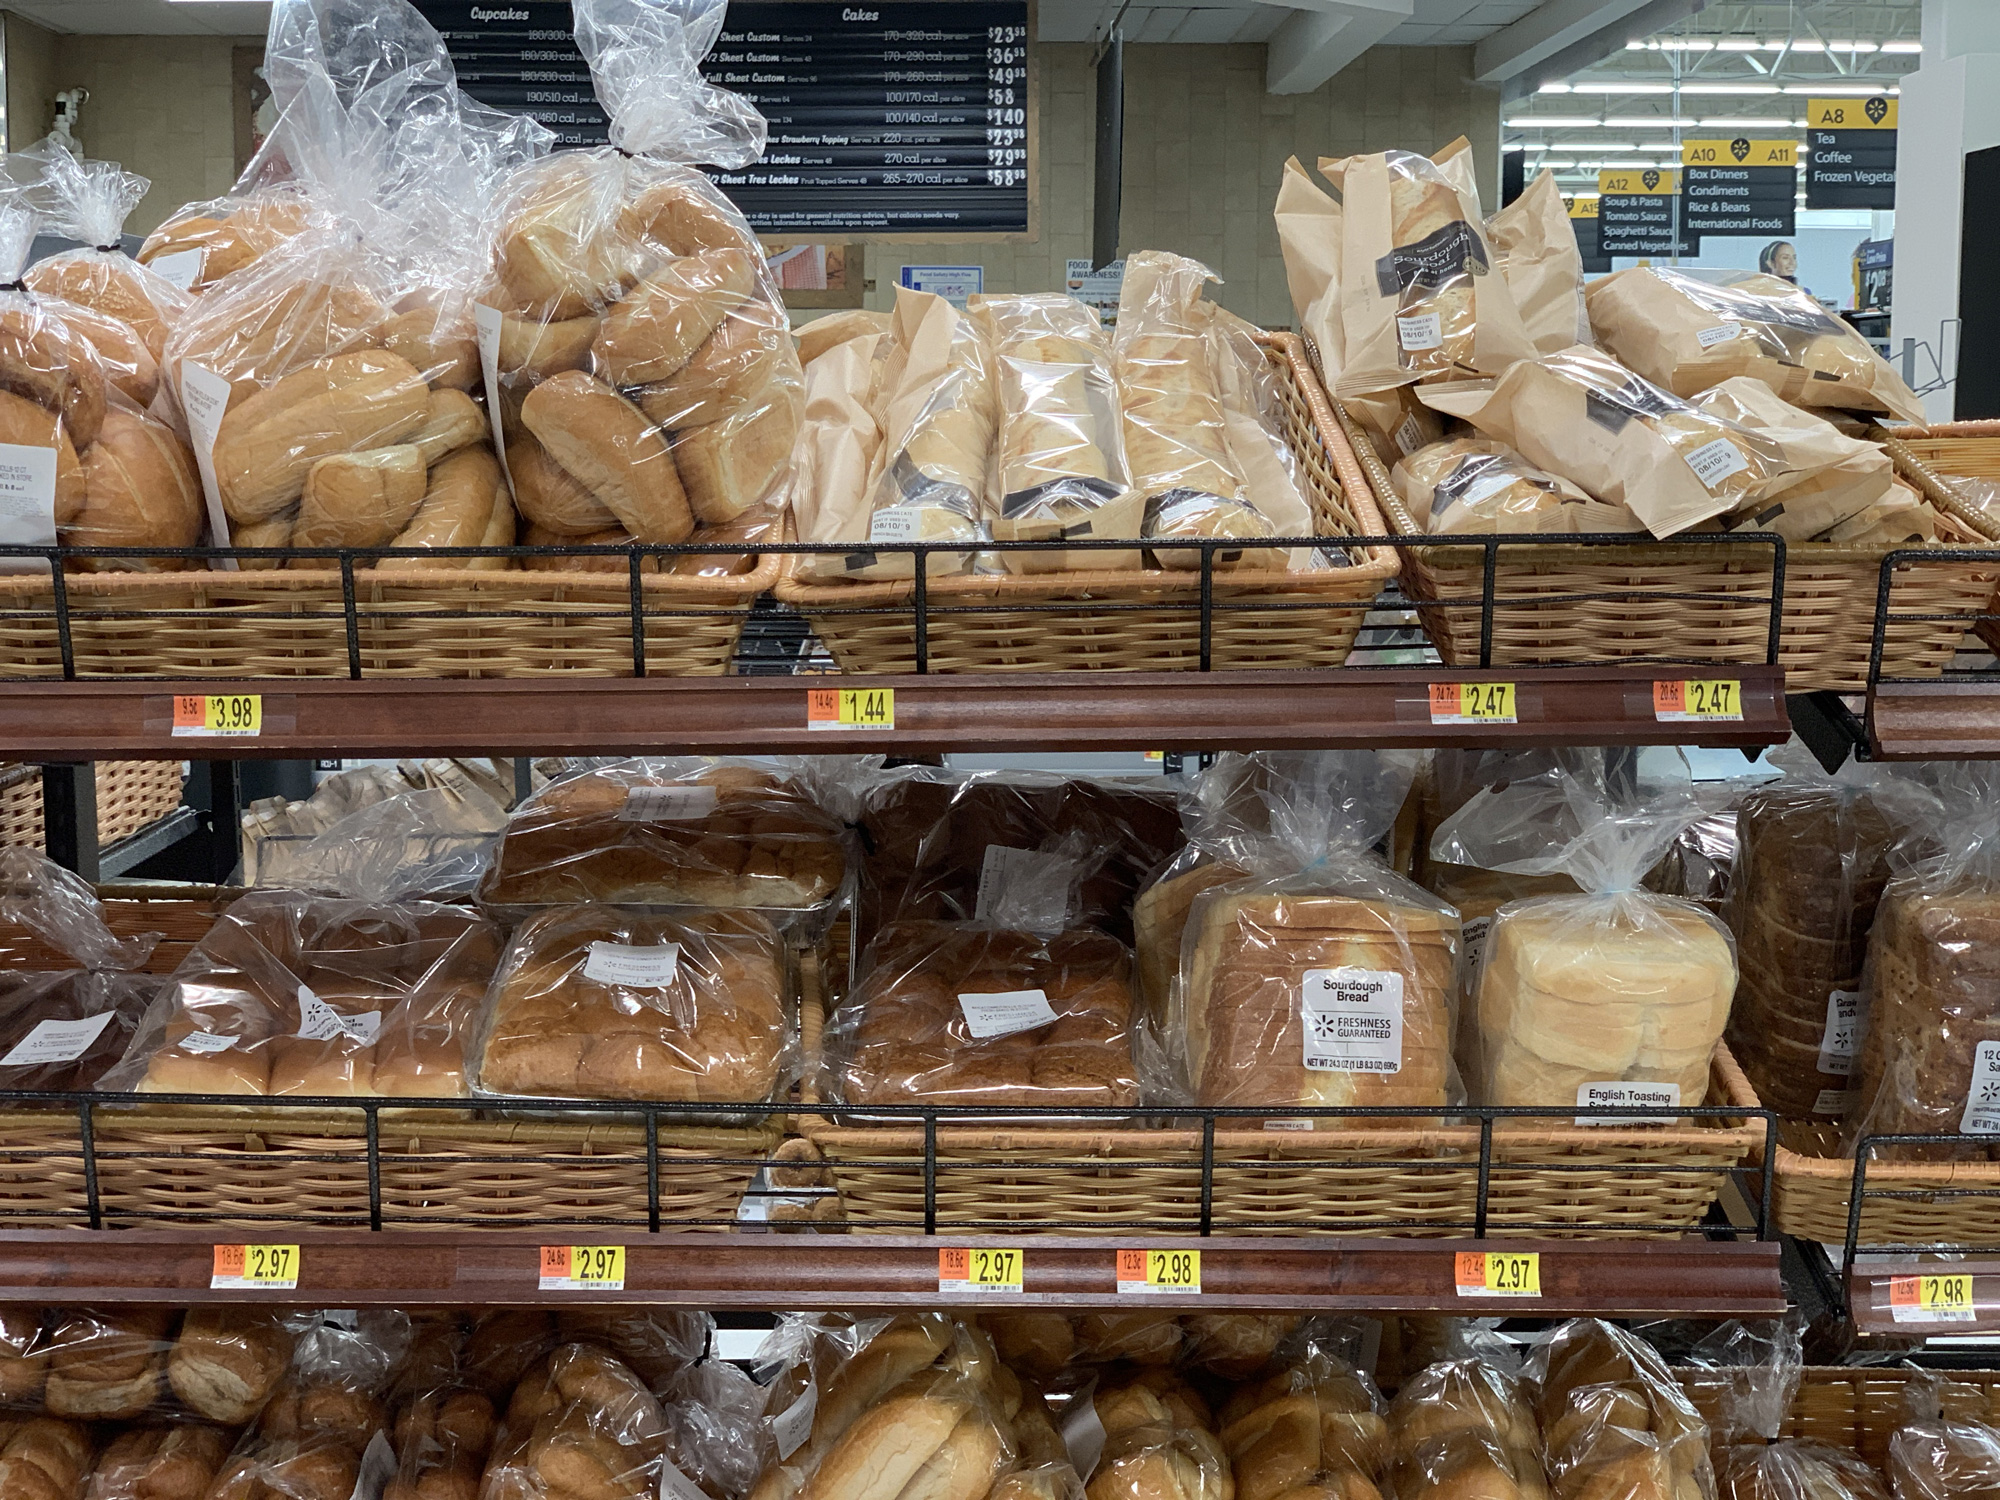 Best Walmart Bakery items